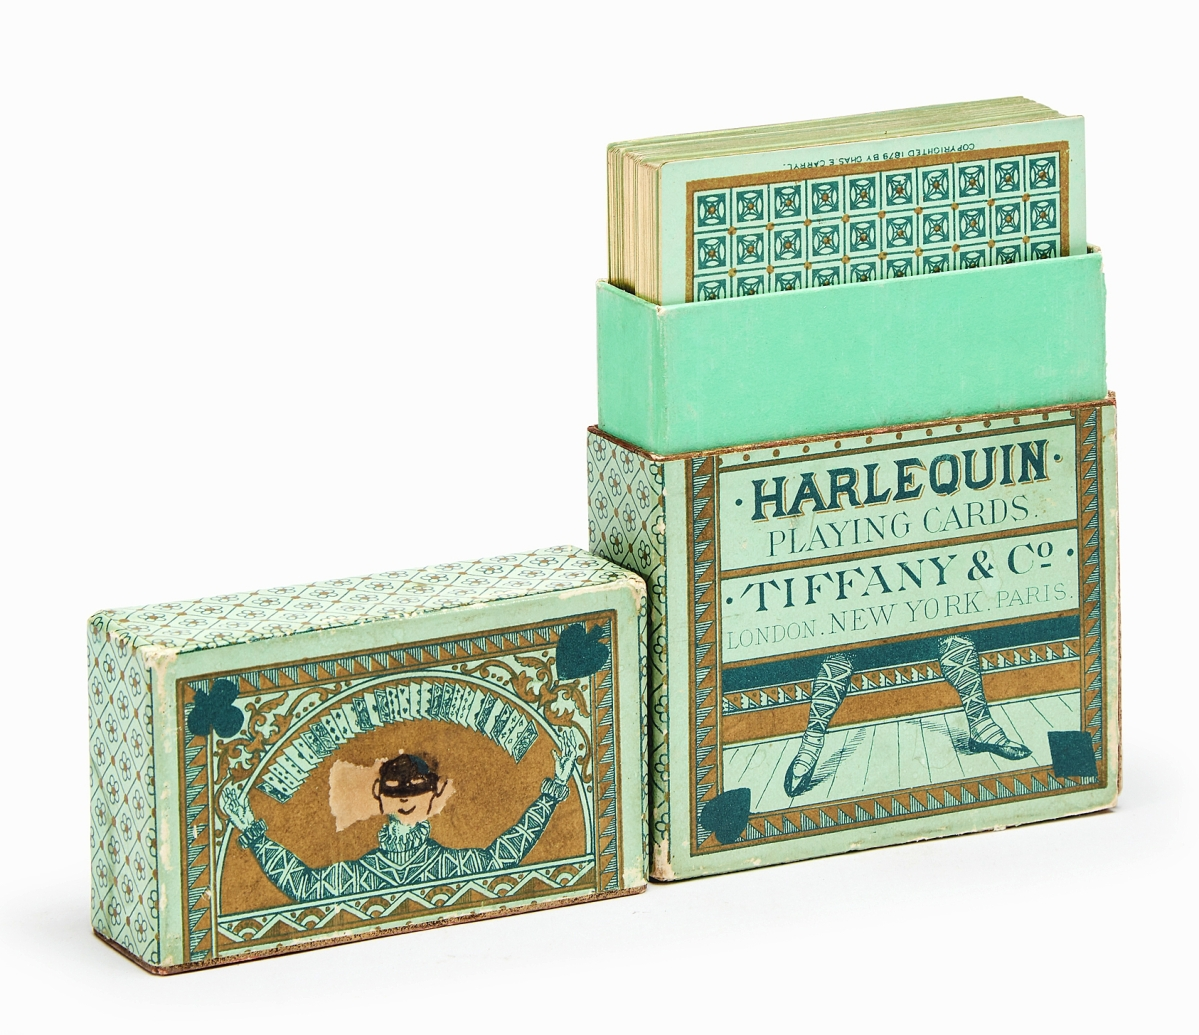 A complete deck of 52 chromolithograph transformation Harlequin playing cards, New York, Paris, London: Tiffany & Co., 1879, in their original printed box, appearing never to have been played with, was bid to $8,820, five times the high estimate.